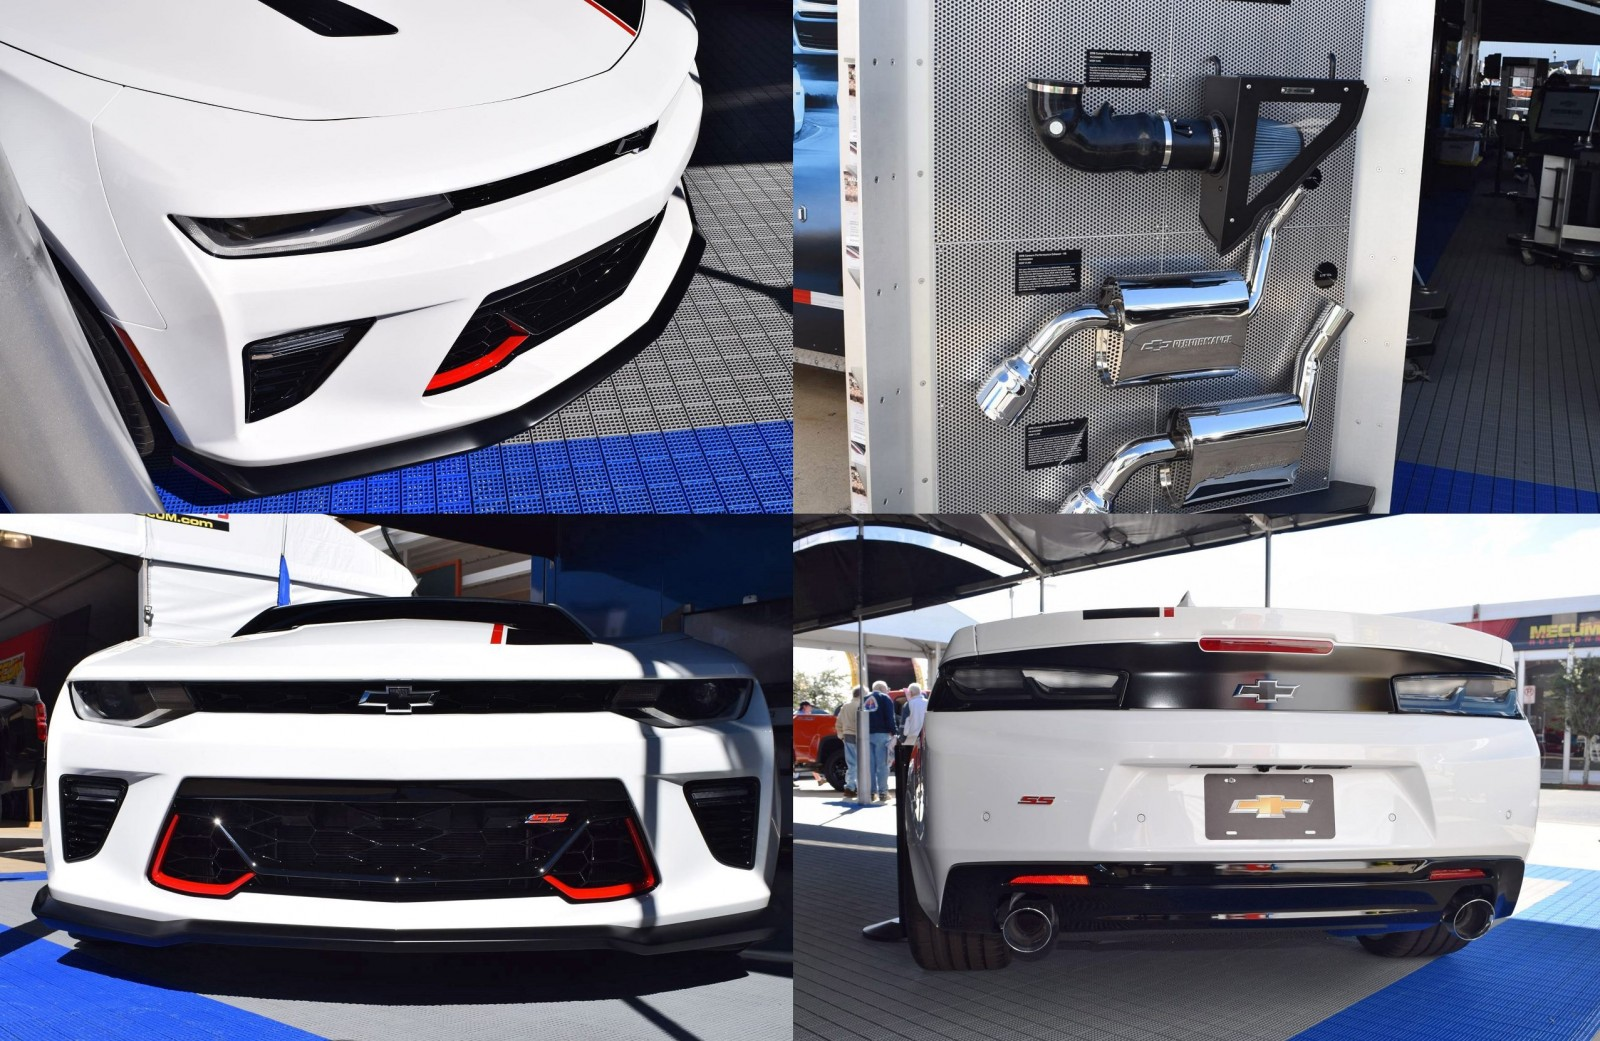 2016 camaro by chevrolet performance brembos springs cold air intake sport exhausts. Black Bedroom Furniture Sets. Home Design Ideas